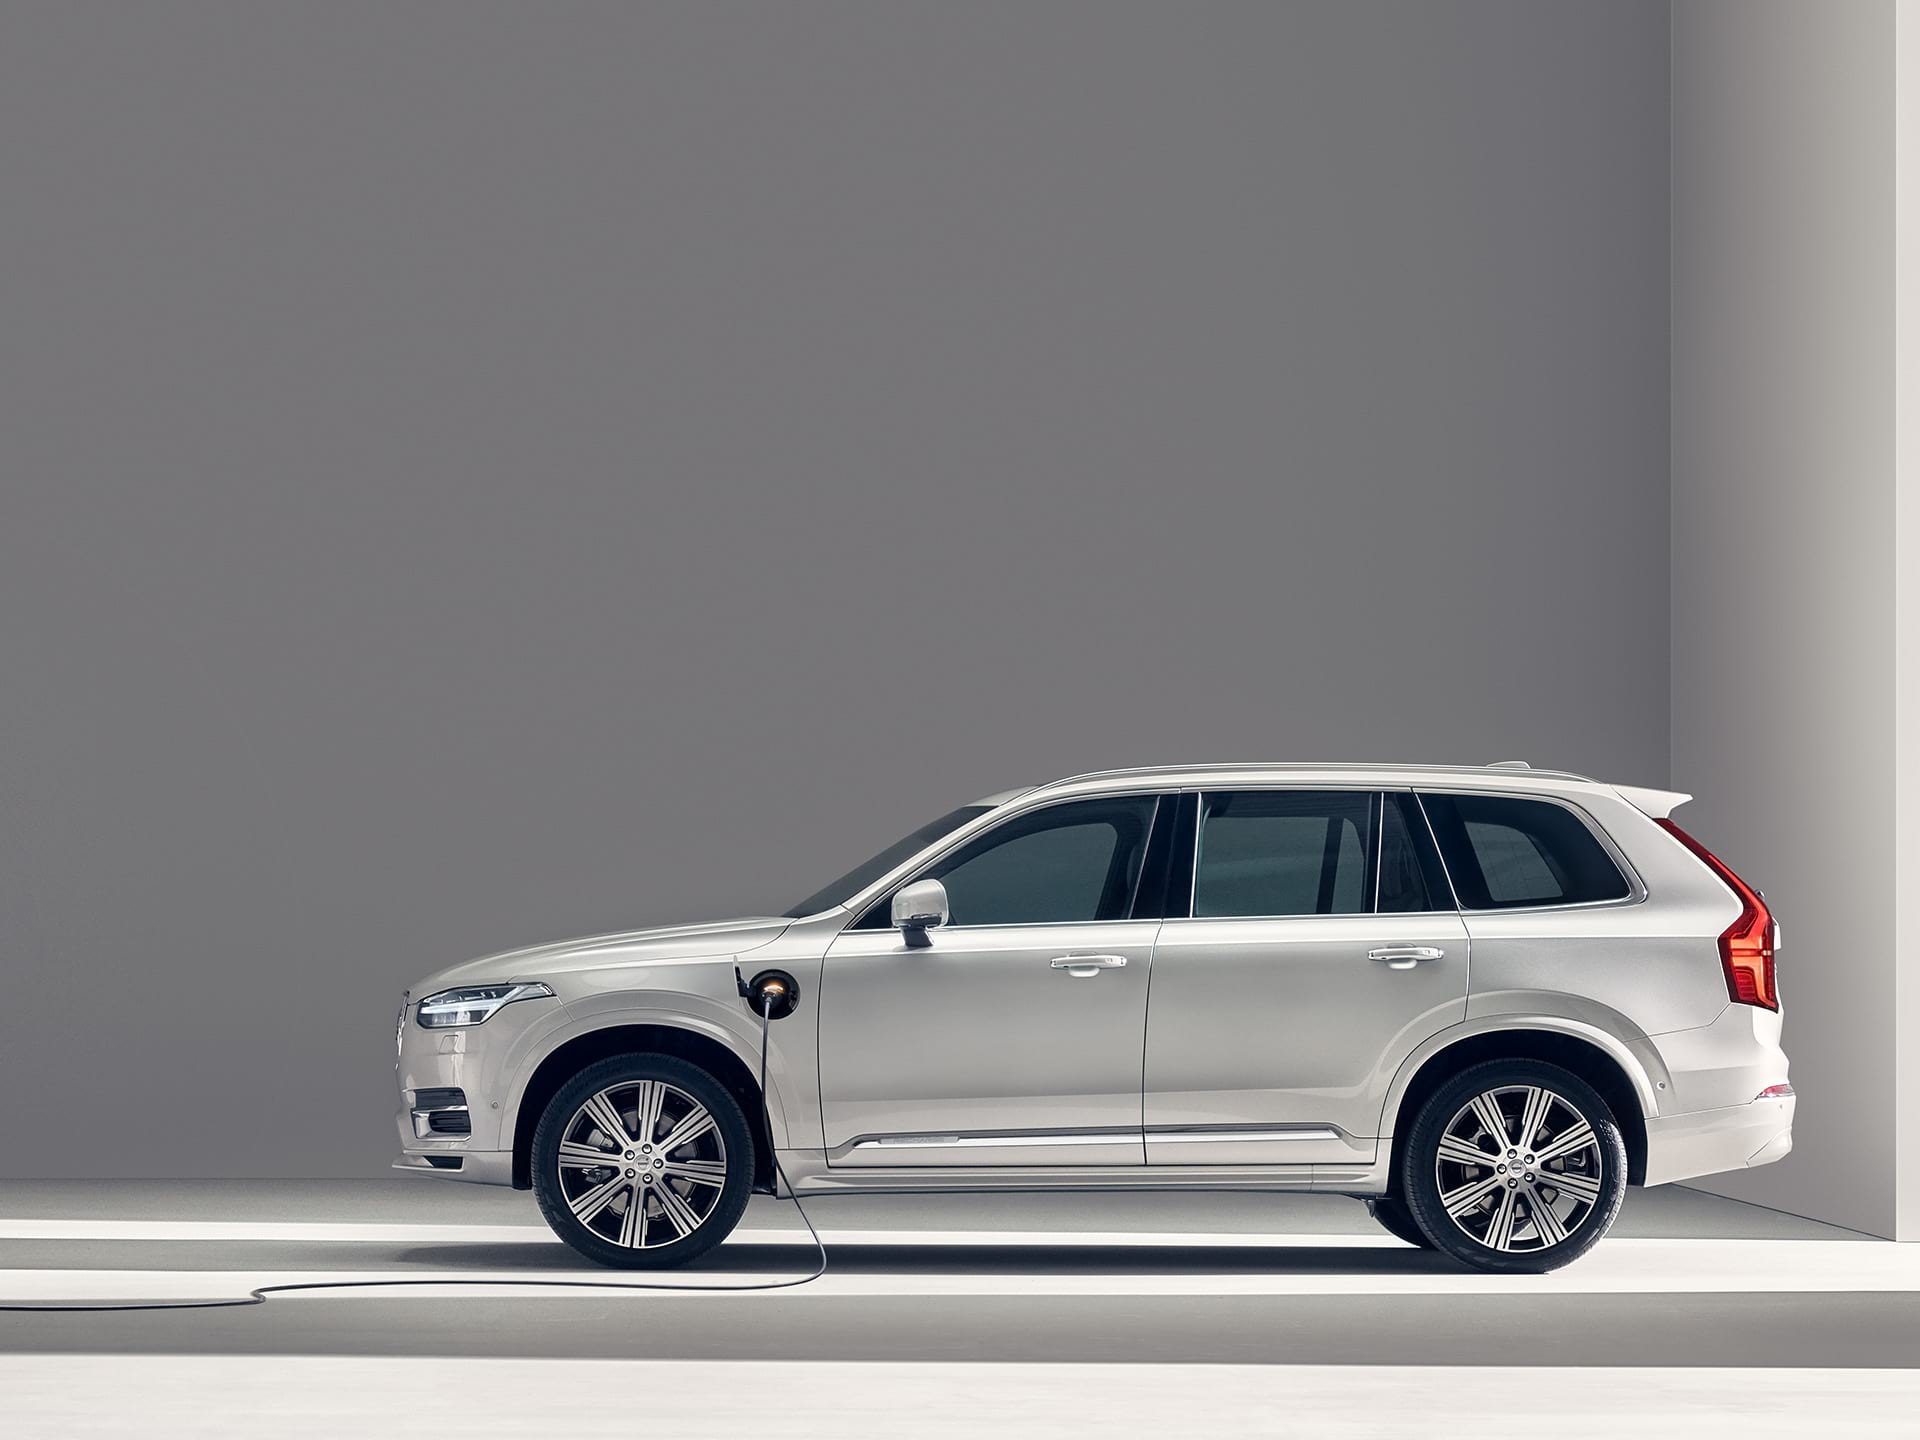 A Volvo XC90 Recharge being charged.